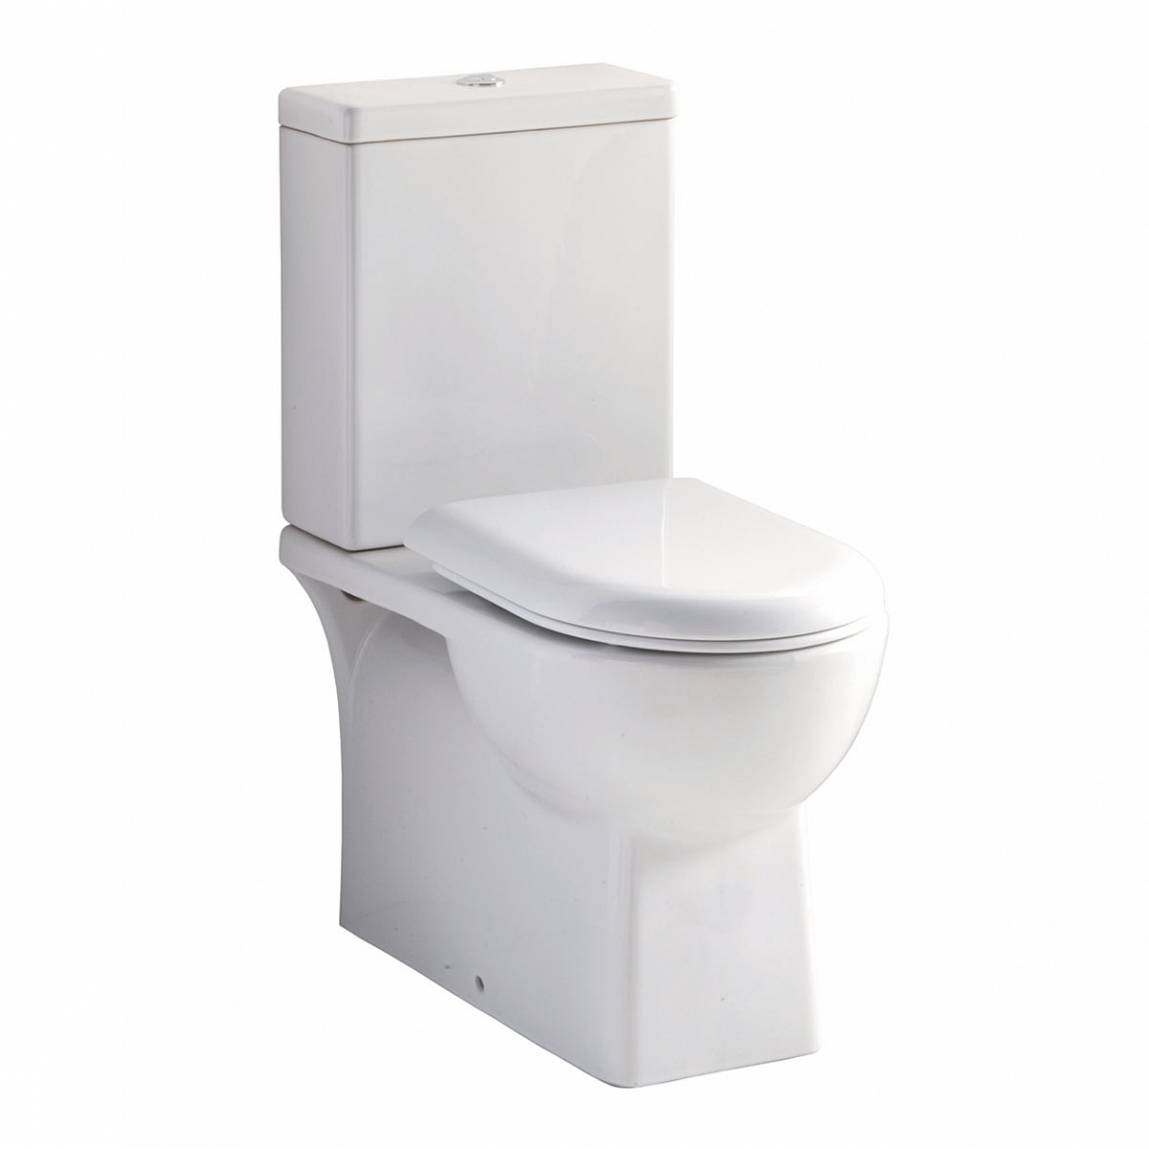 Image of Brent Close Coupled Toilet inc Seat PLUS Pushfit Valve